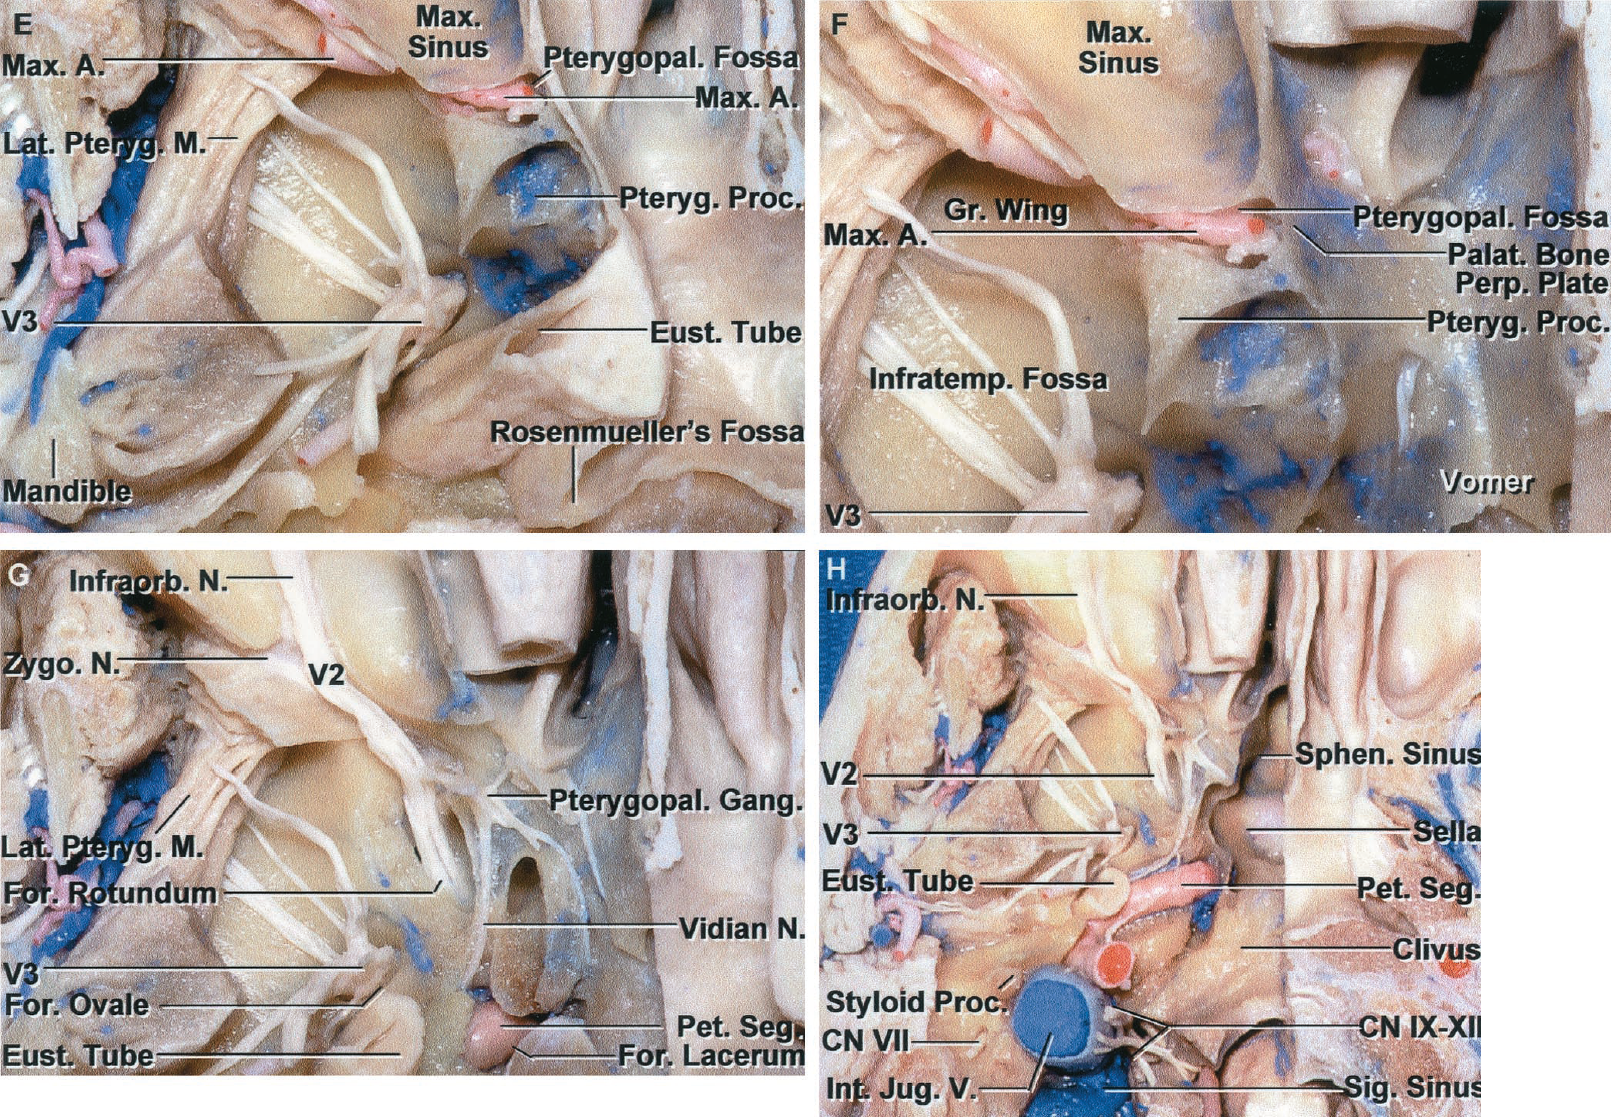 FIGURE 6.6. E-H. E, some of the lateral pterygoid muscle has been removed to expose the branches of the mandibular nerve in the infratemporal fossa. The lower part of the pterygoid process has been removed to expose the maxillary artery in the pterygopalatine fossa. The pharyngeal recess (fossa of Rosenmüller) projects laterally from the posterolateral corner of the nasopharynx below the foramen lacerum. F, enlarged view. The pterygopalatine fossa is located between the posterior maxillary wall anteriorly, the sphenoid pterygoid process posteriorly, the perpendicular plate of the palatine bone medially, and the infratemporal fossa laterally. The medial part of the eustachian tube has been removed. G, the pterygoid process has been removed to expose the maxillary nerve passing through the foramen rotundum to enter the pterygopalatine fossa, where it gives rise to the infraorbital and zygomatic nerves and communicating rami to the pterygopalatine ganglion. The vidian nerve exits the vidian canal and joins the pterygopalatine ganglion. The terminal part of the petrous carotid is exposed above the foramen lacerum. H, enlarged view of the region of the carotid canal and jugular foramen. The bone below the carotid canal has been removed to expose the petrous carotid. The deep portion of the parotid gland has been removed to expose the facial nerve at the styloid foramen. The sigmoid sinus hooks downward from the posterior fossa and opens into the internal jugular vein. A portion of the occipital condyle has been removed to expose the hypoglossal nerve joining the nerves exiting the jugular foramen to pass downward in the carotid sheath. The styloid process and facial nerve at the stylomastoid foramen are located on the lateral side of the internal jugular vein. The right half of the floor of the sphenoid sinus has been removed to expose the sella. A., artery; Cap., capitis; Car., carotid; CN, cranial nerve; Cond., condylar; Crib., cribriform; Eth., ethmoid; Eust., eustach